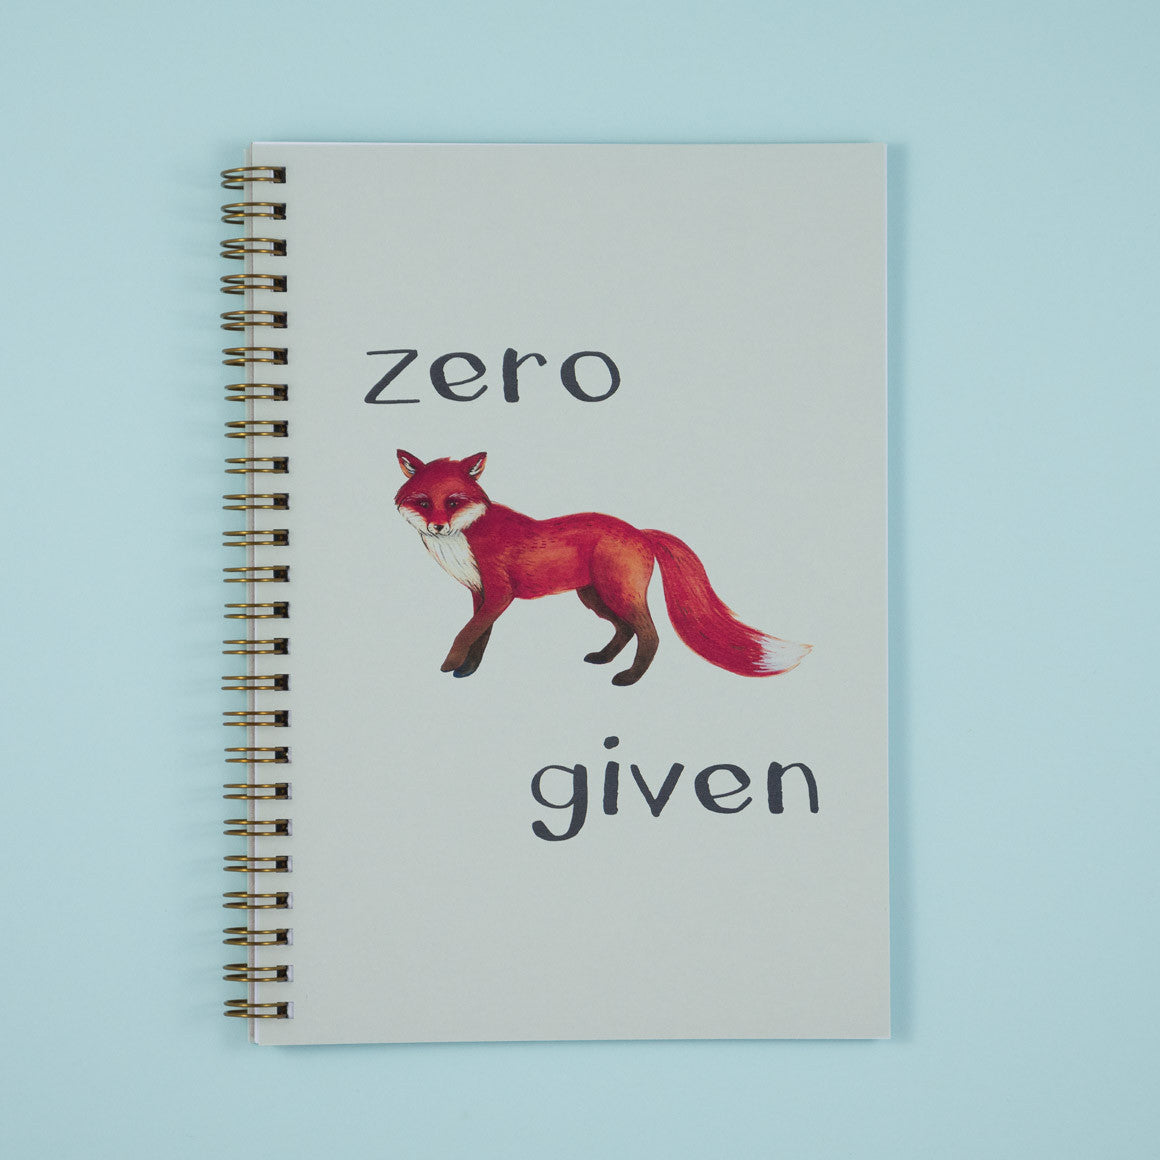 Zero fox given notebook a5